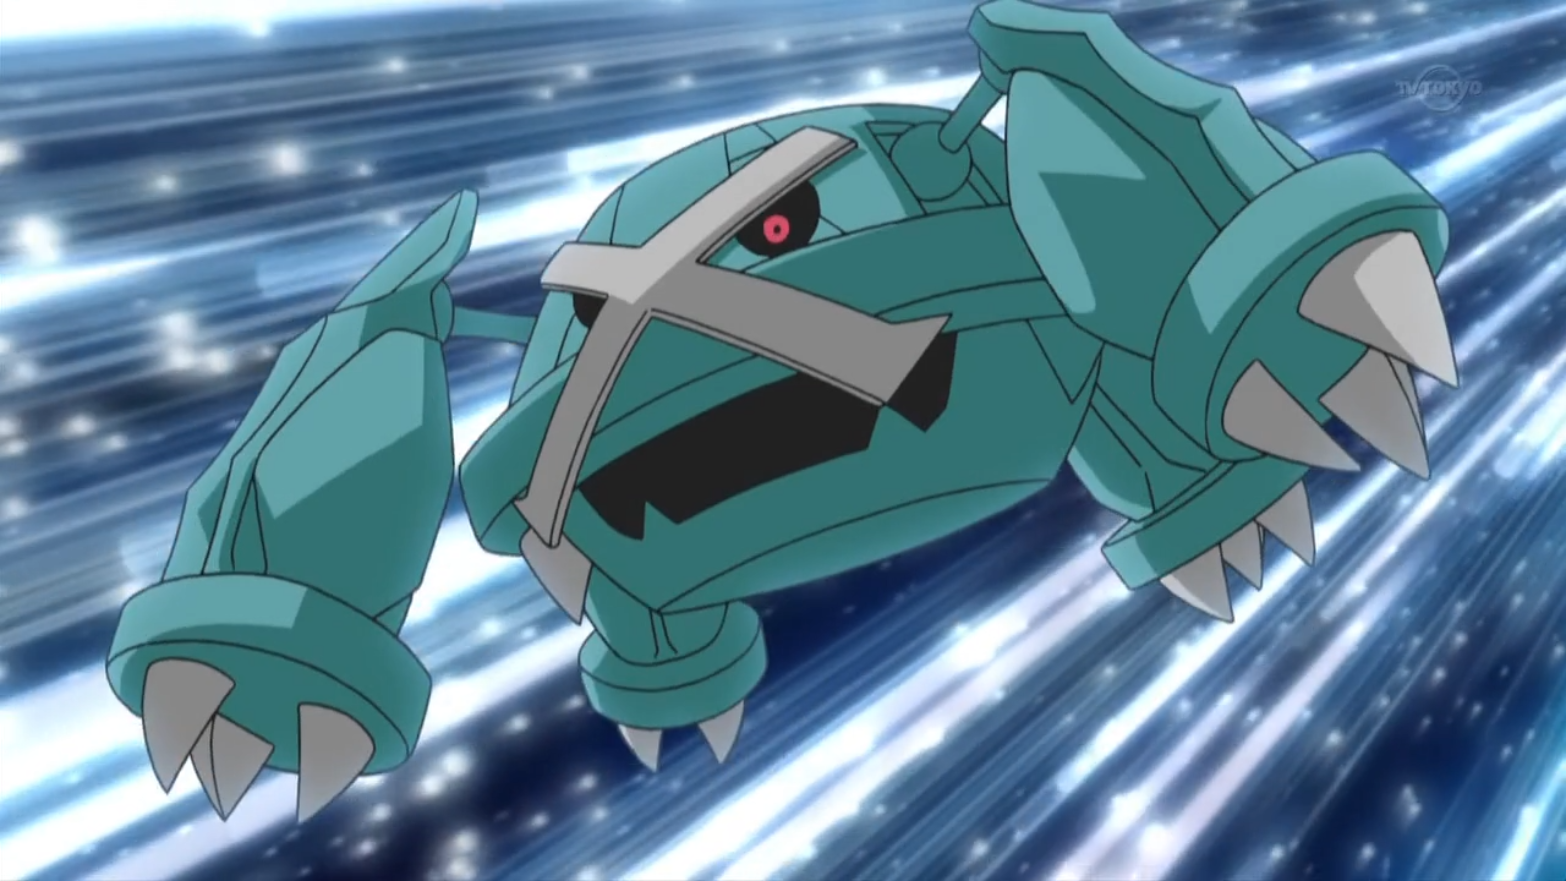 Metagross lived on the same mountain as Magnezone and, as it was also a Steel type, also gained a lot of power from the mountain's magnetic fields that it could only release by battling. When the trench used for battling was flooded, it started battling Magnezone in a nearby town and was only stopped from destroying the town when the water in the trench was removed.